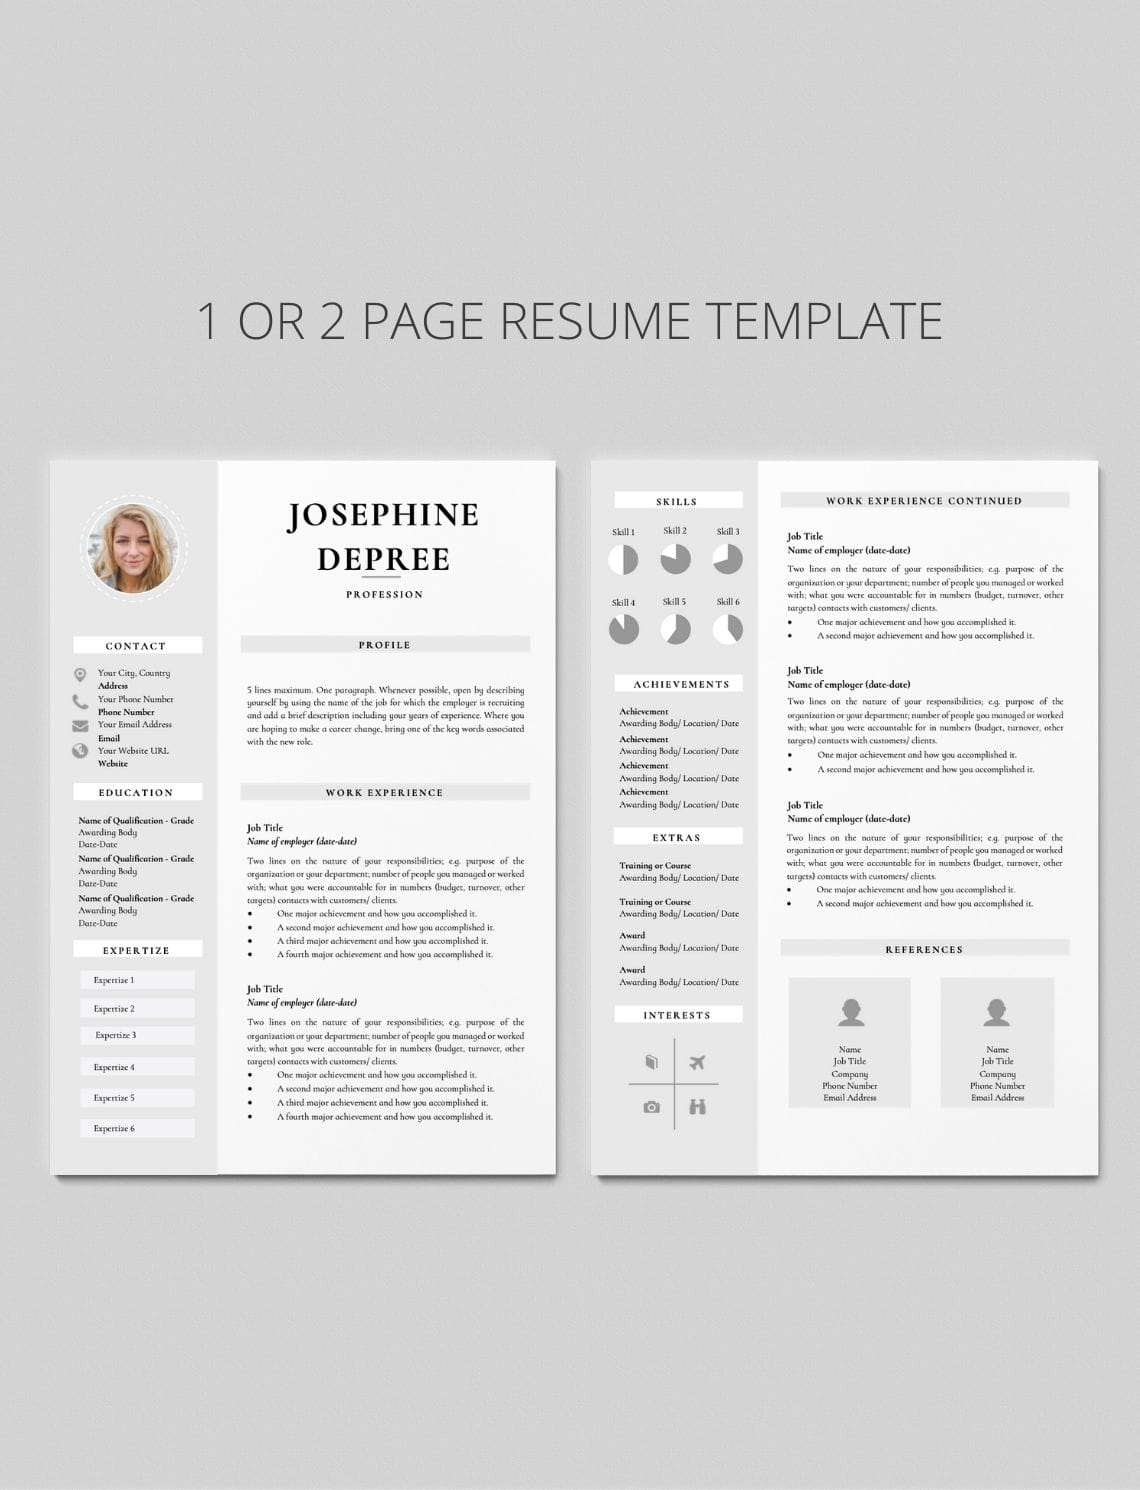 2 Page Cv Format from careersoko.com